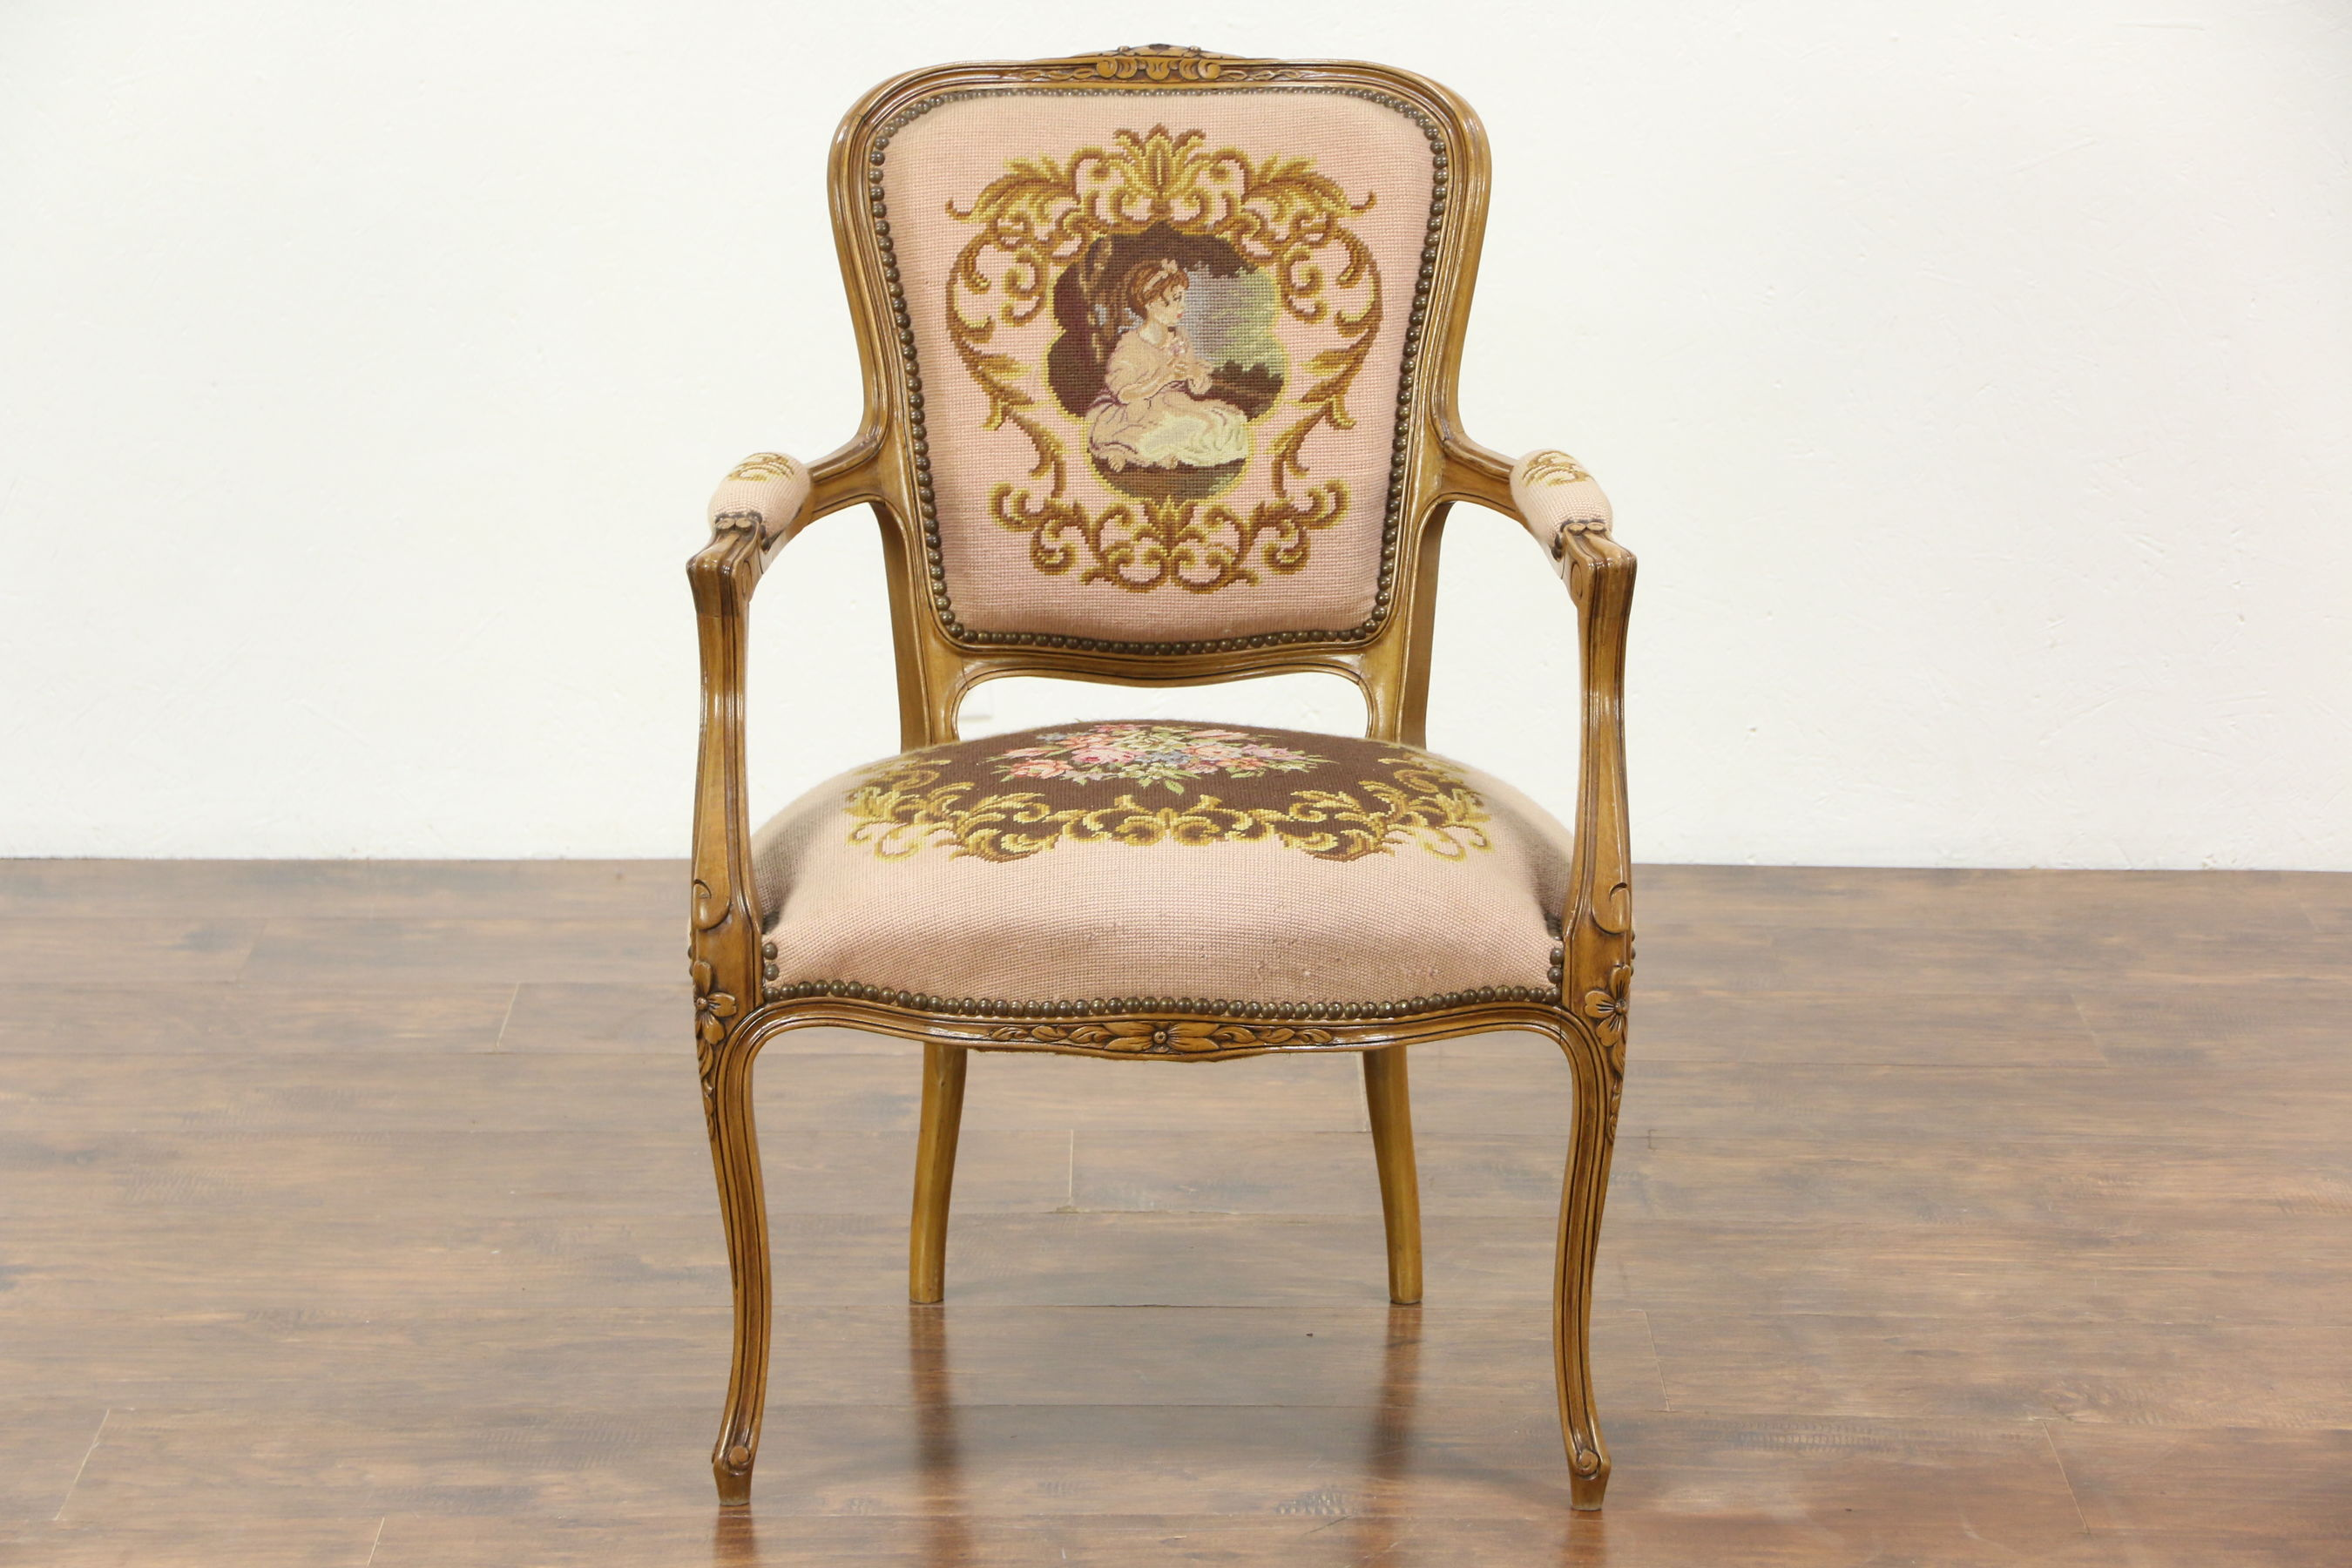 SOLD - French Carved Vintage Chair, Needlepoint & Petit Point Upholstery -  Harp Gallery